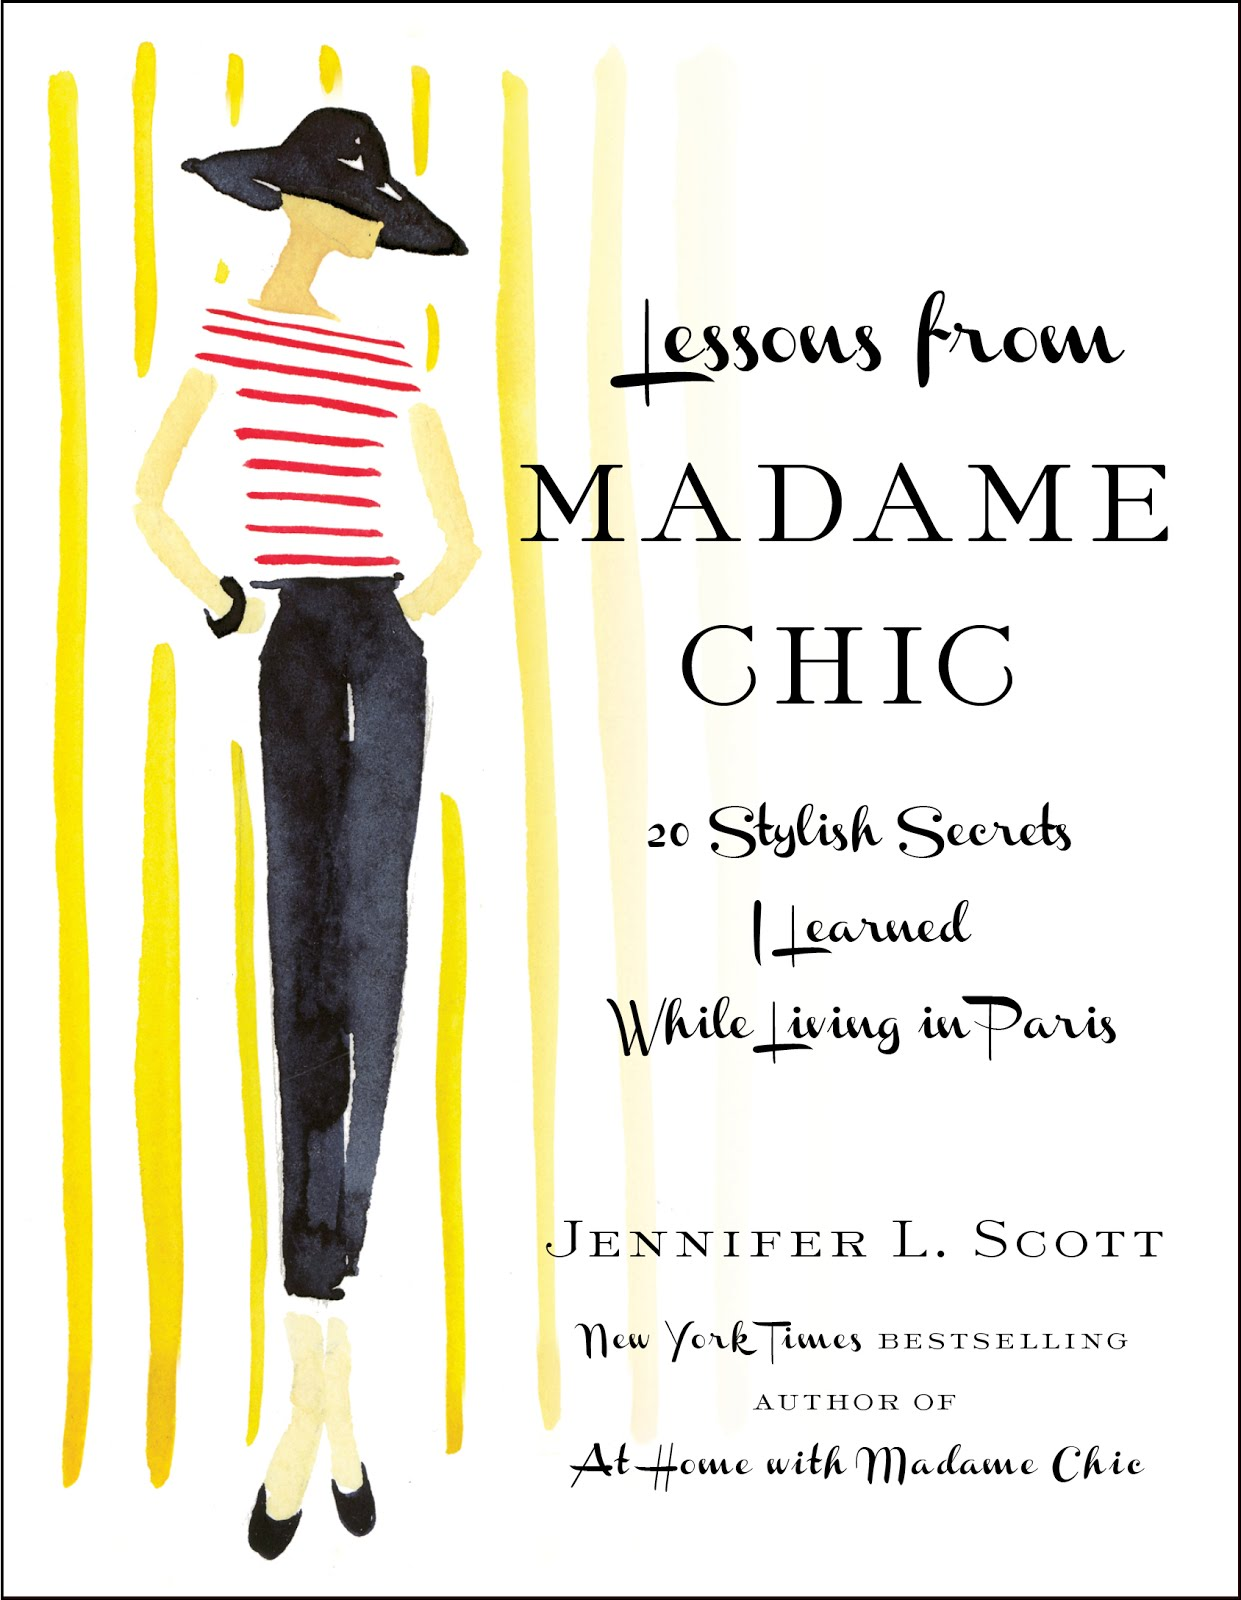 The Madame Chic series